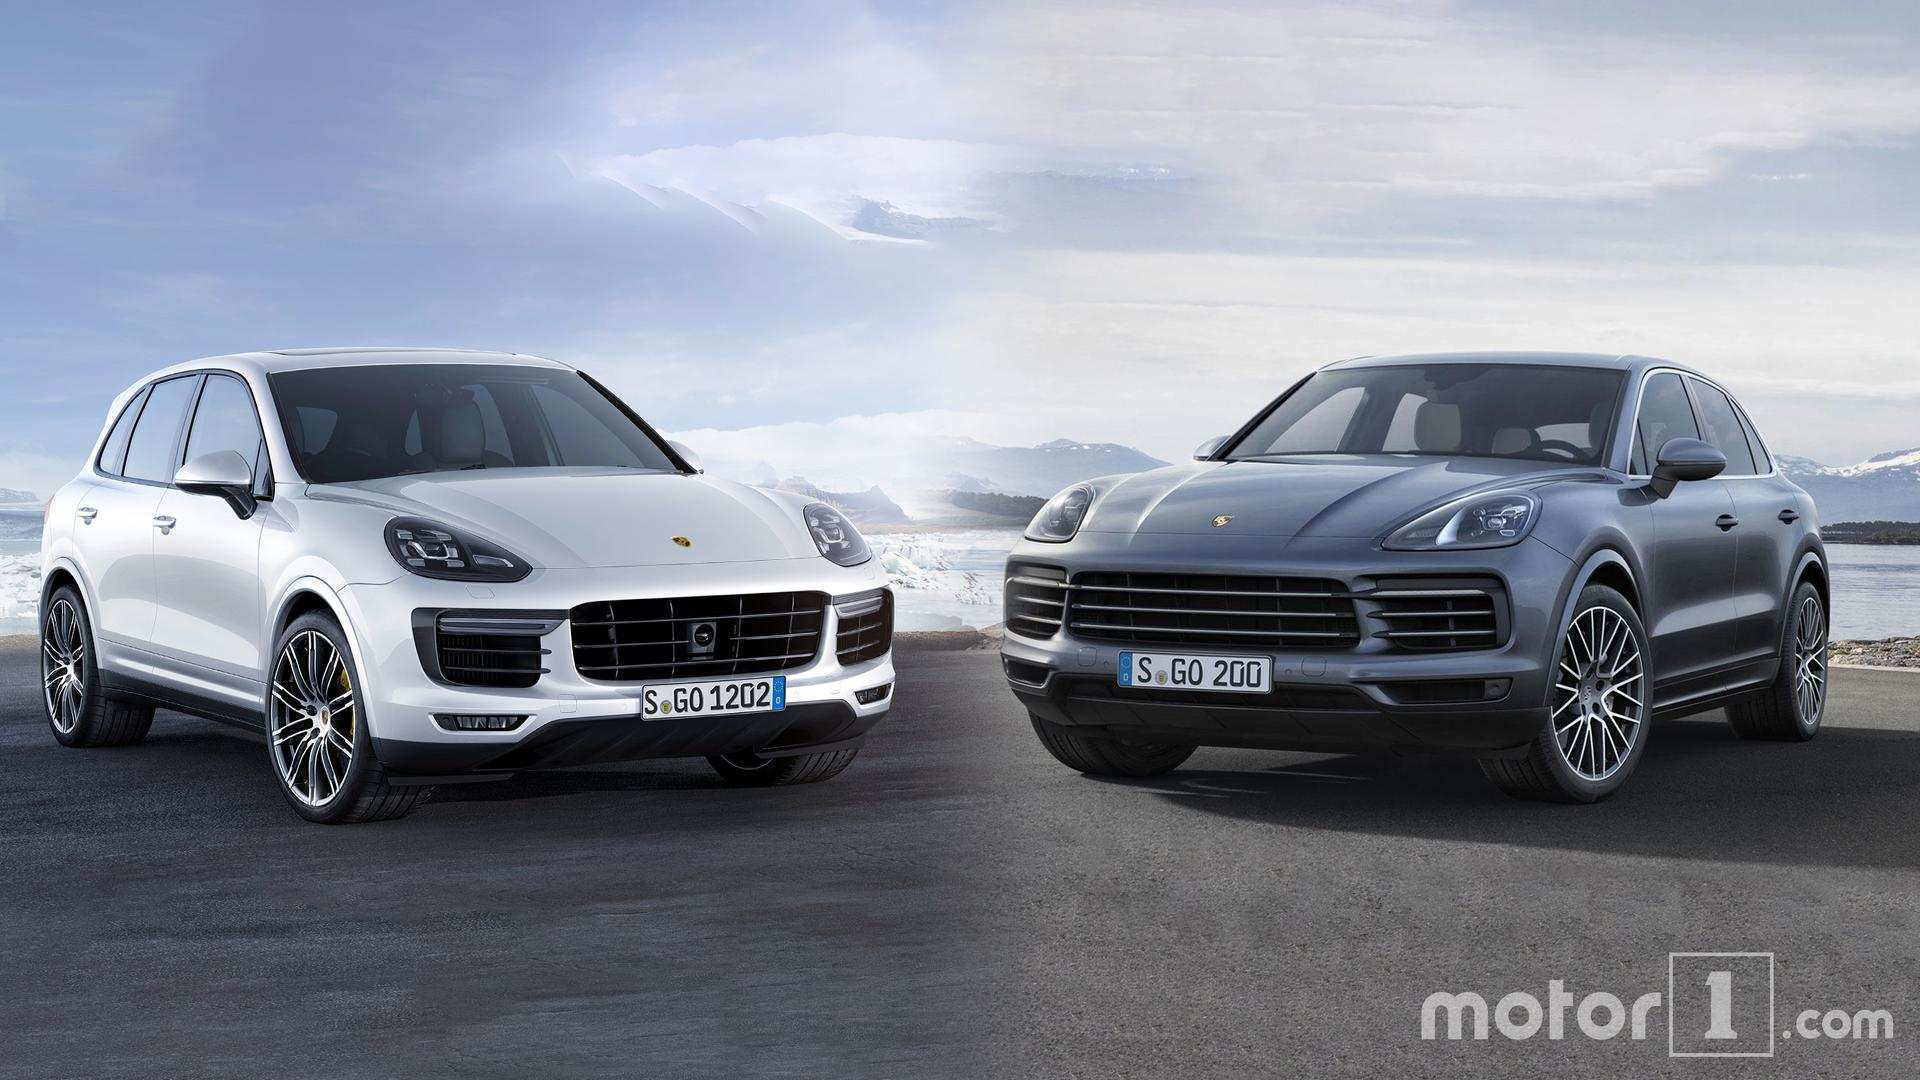 41 A 2019 Porsche Cayenne Model Release Date And Concept